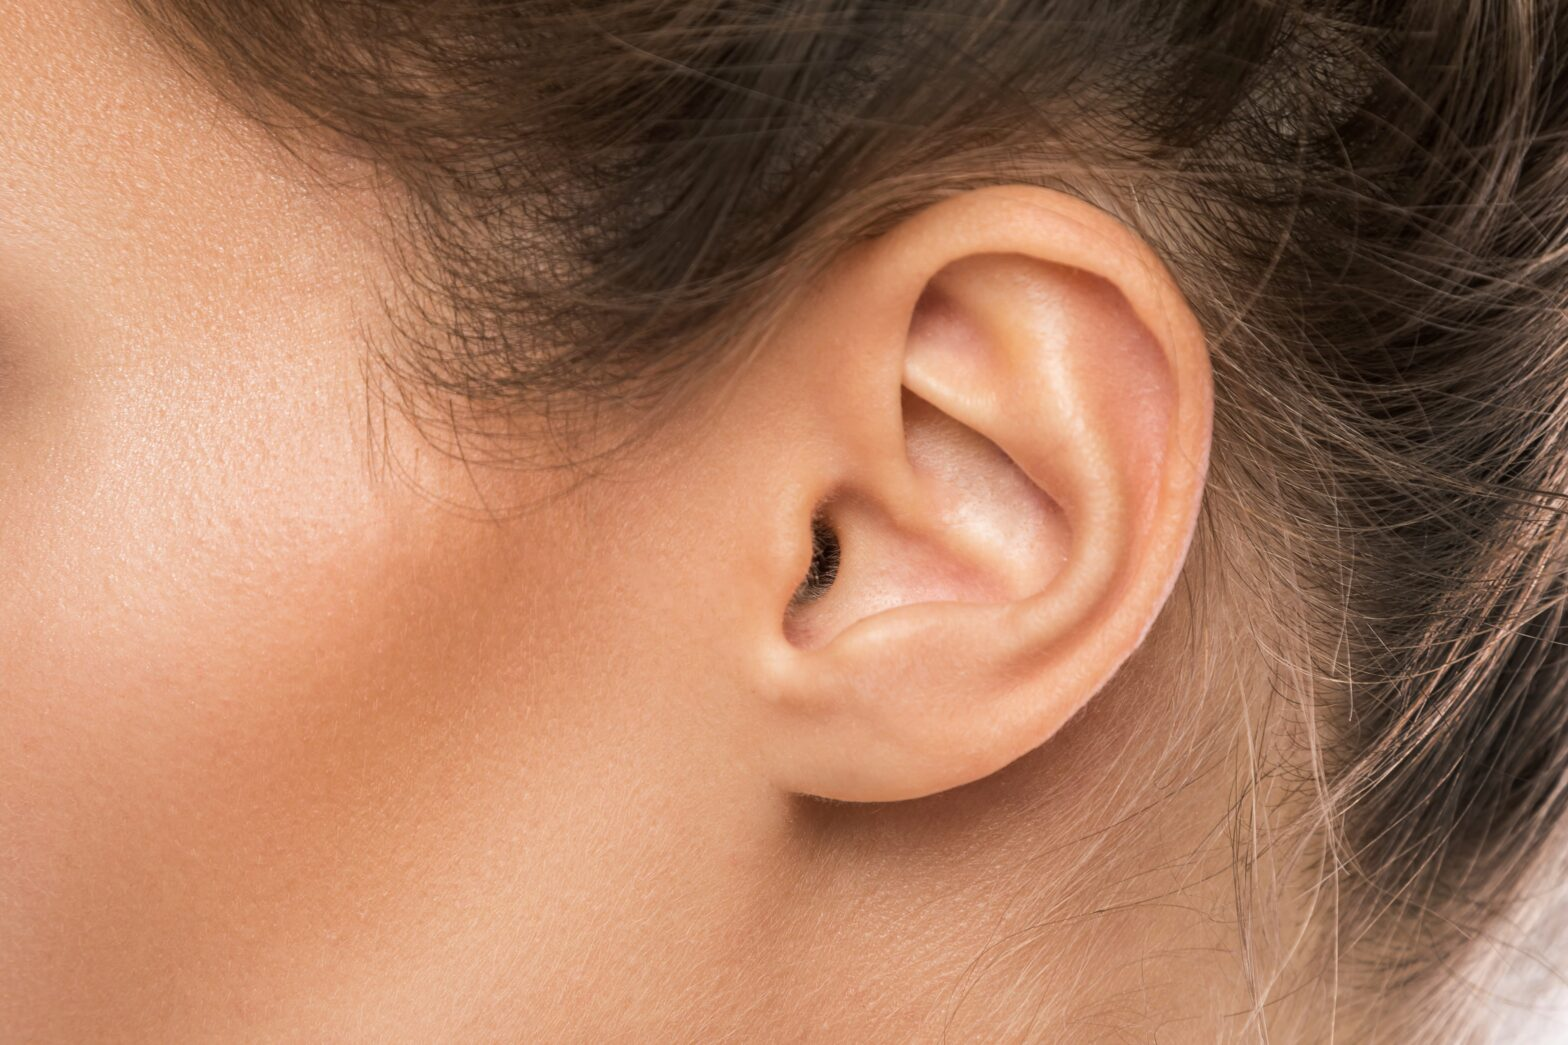 distorted ear canals